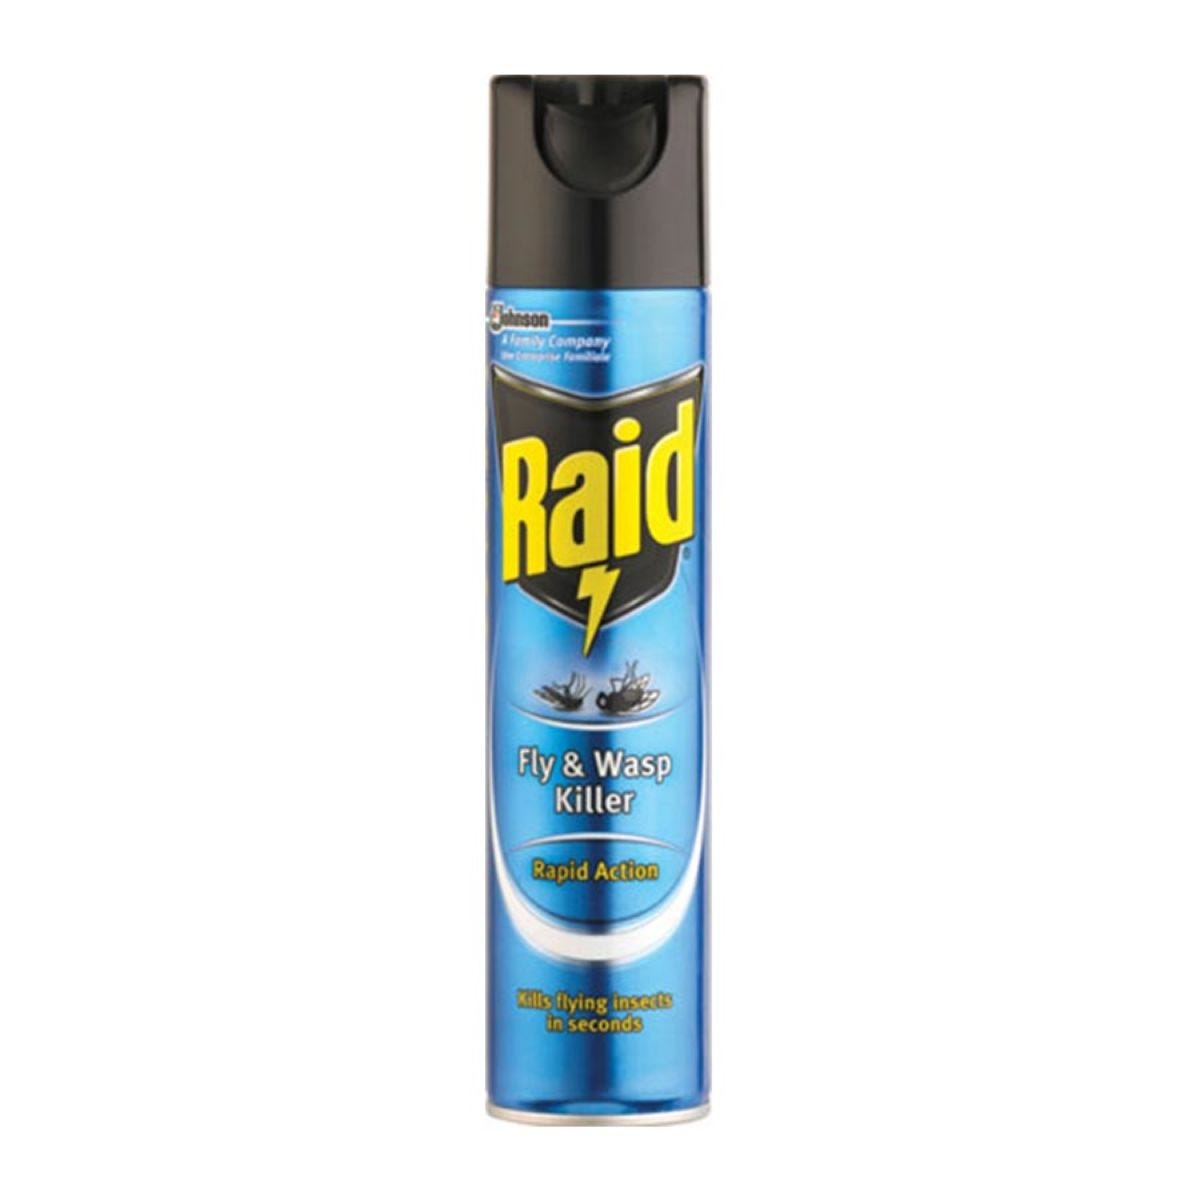 Raid Fly & Wasp Killer